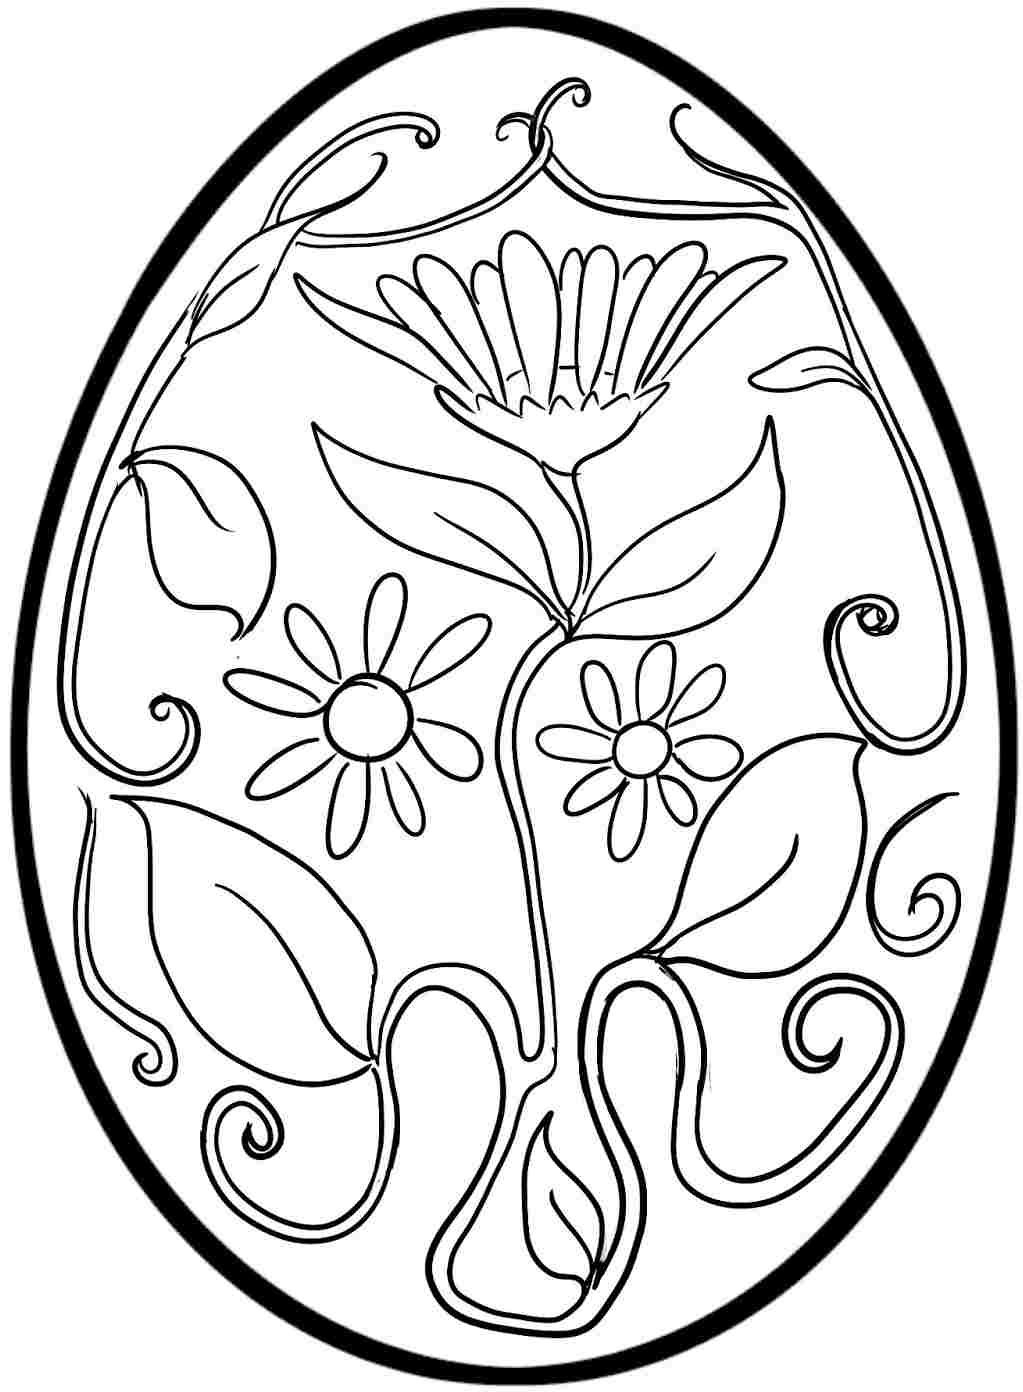 Easter Egg Colouring Pages Free For Kids & Boys # | Easter - Free Printable Easter Basket Coloring Pages